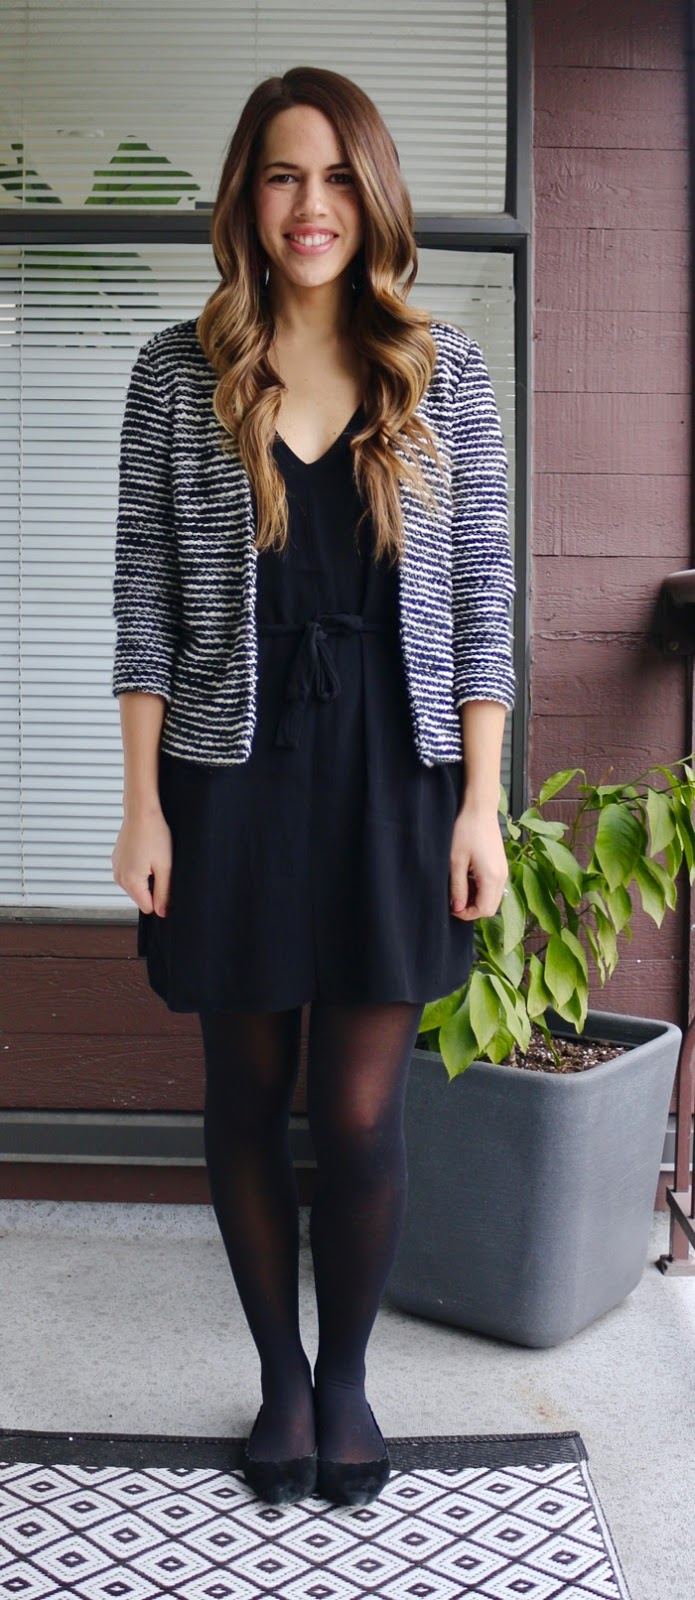 Jules in Flats - Black Tie-Waist Dress with Striped Jacket for Work